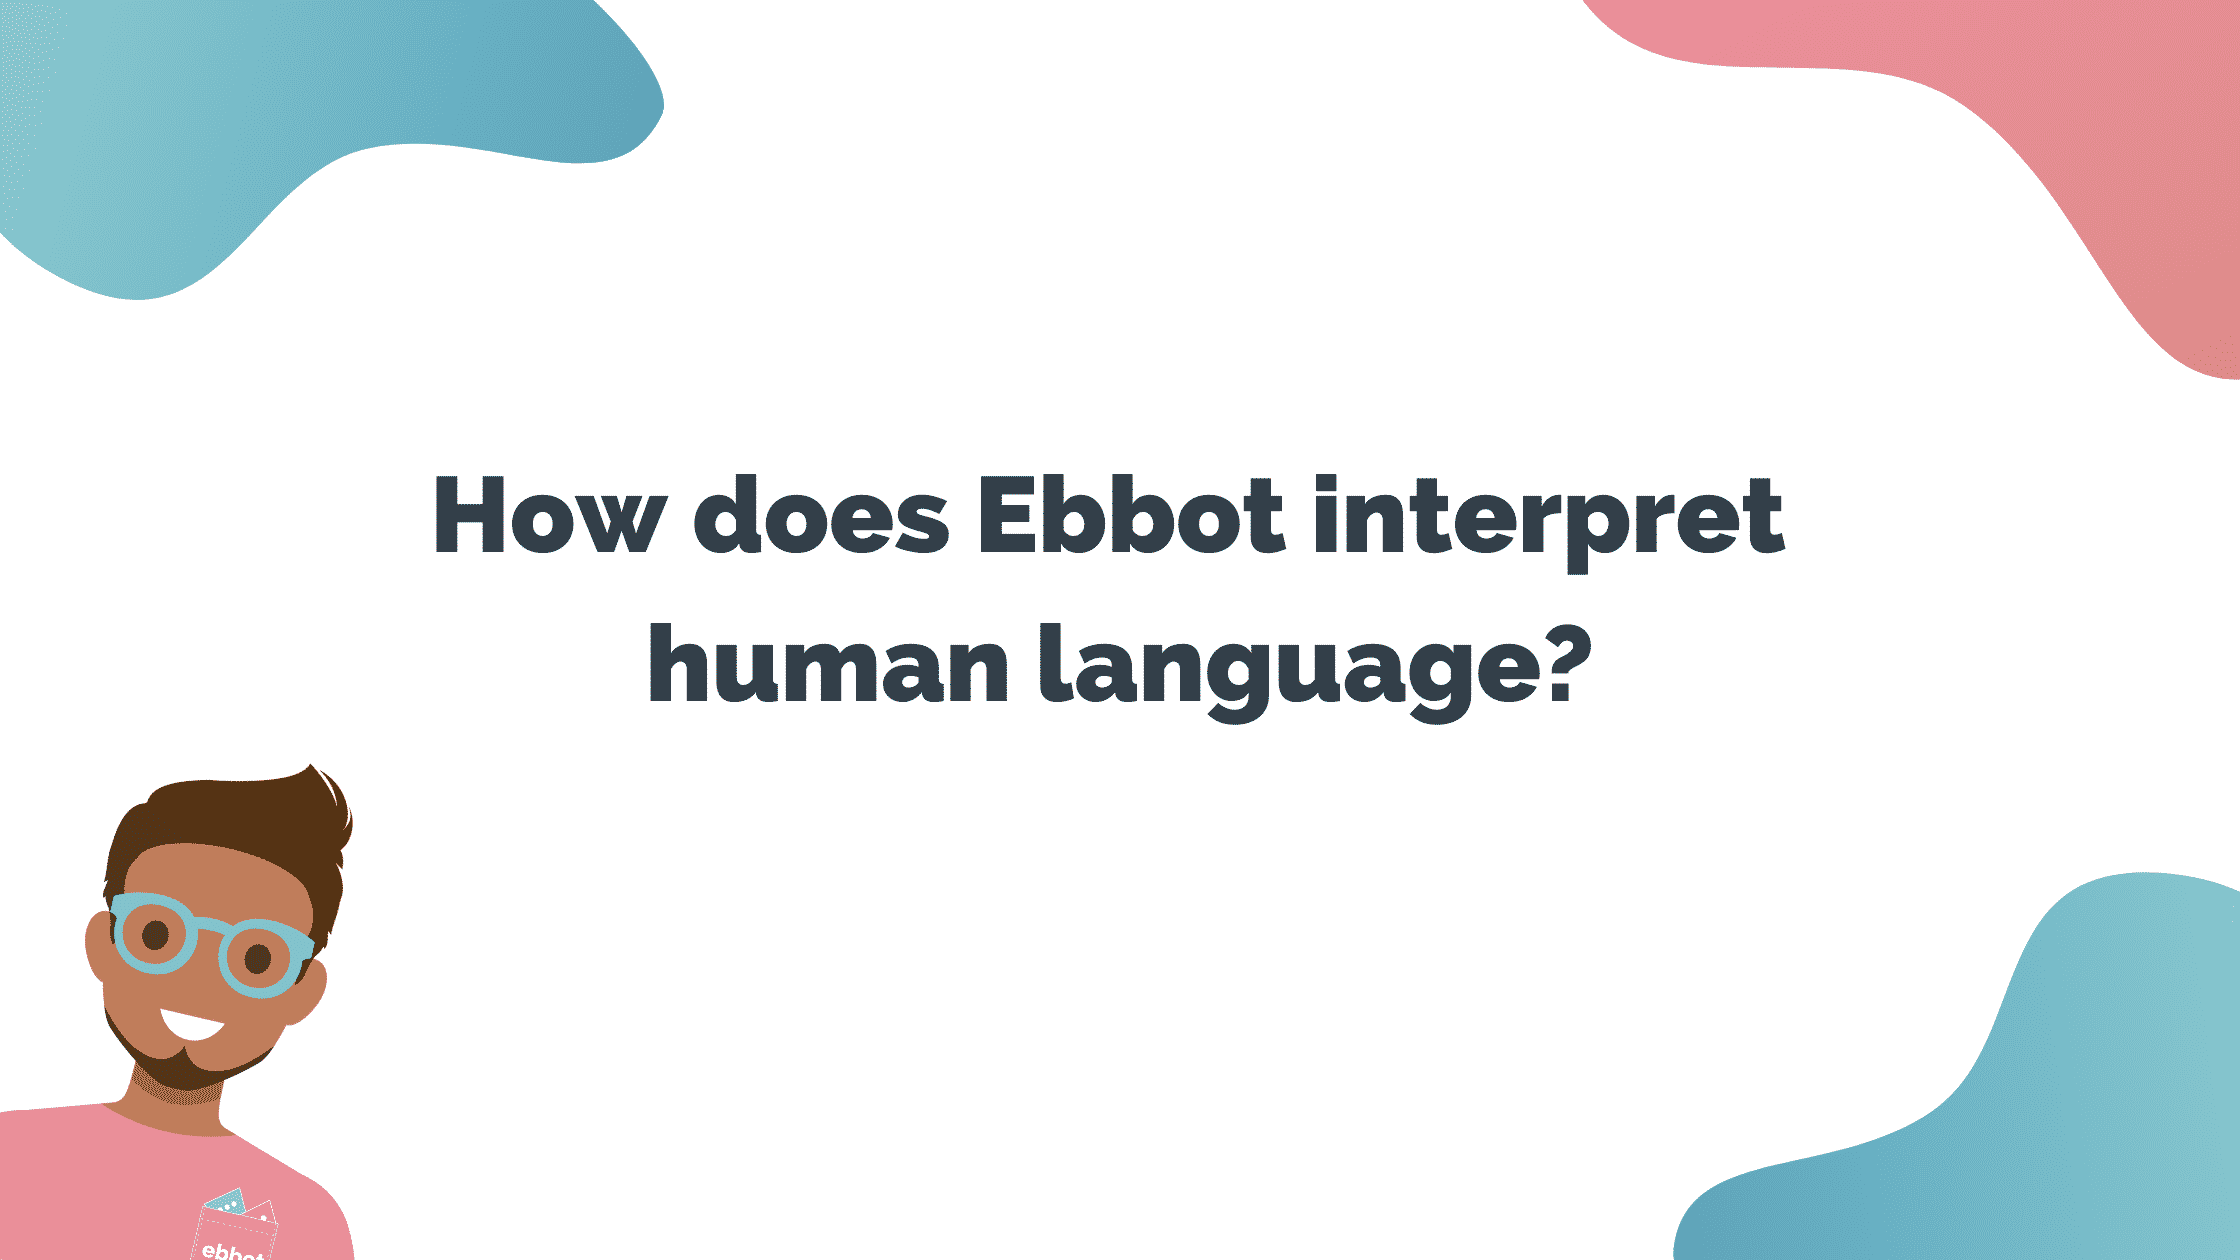 ebbot-interpret-humanlanguage